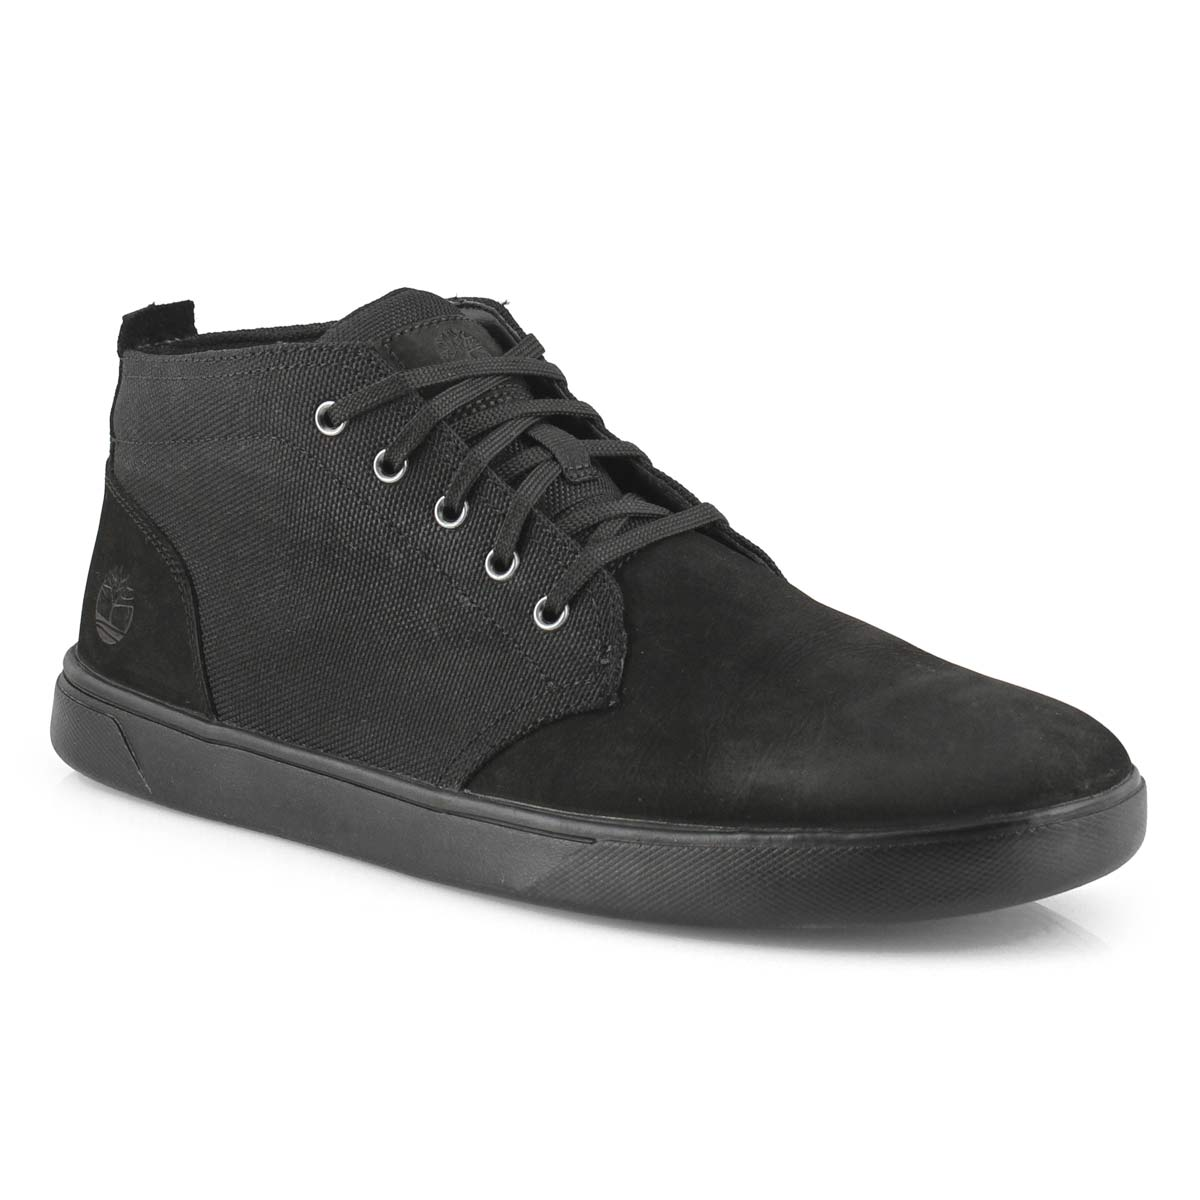 Men's GROVETON black chukka boots